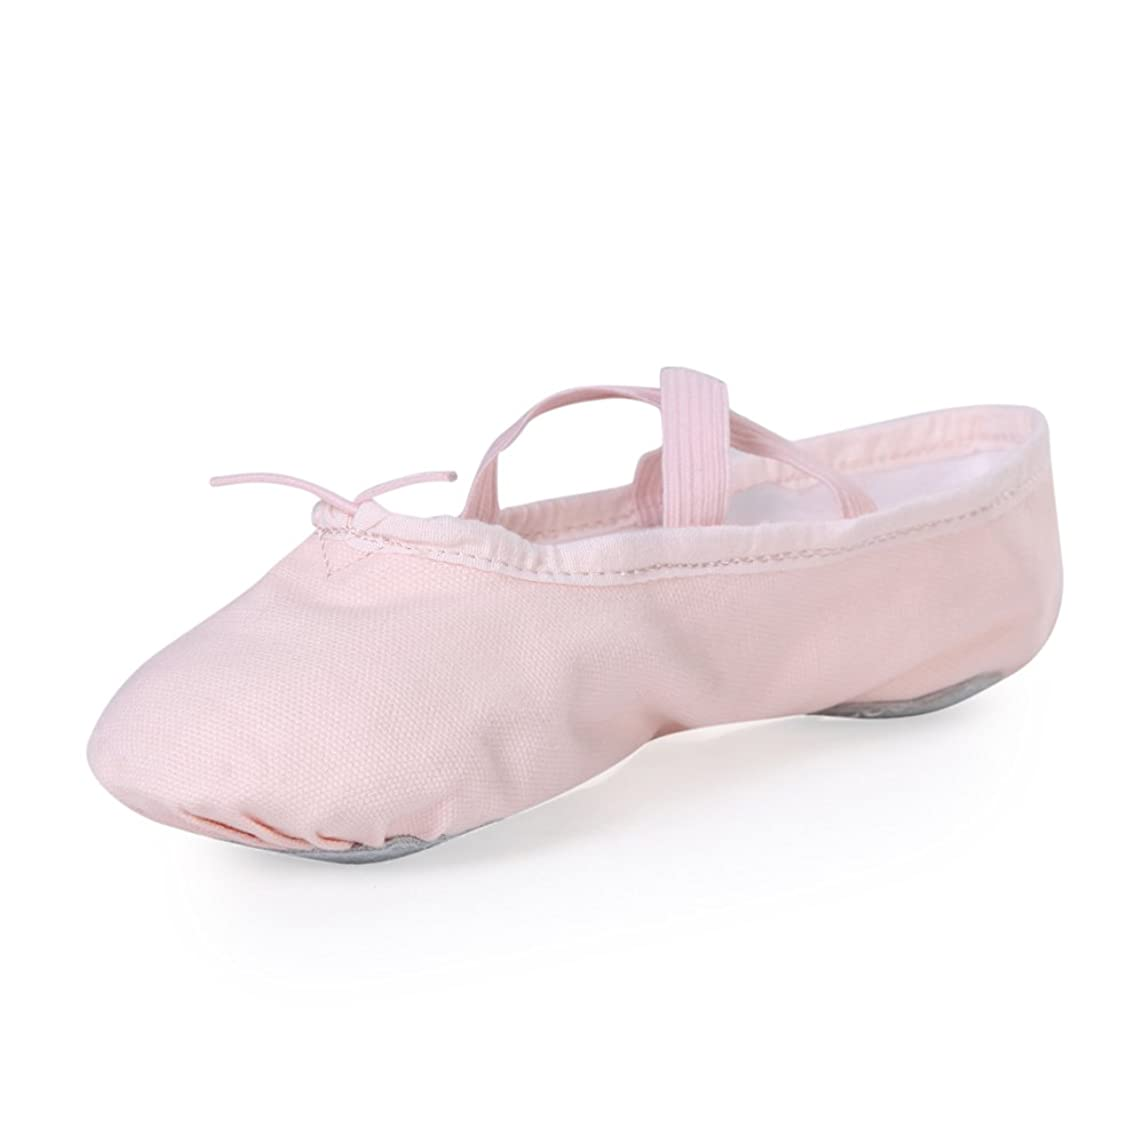 c819e2e8a019 ... STELLE Girls Canvas Ballet Slipper/Ballet Shoe/Yoga Dance Shoe (Toddler/ Little